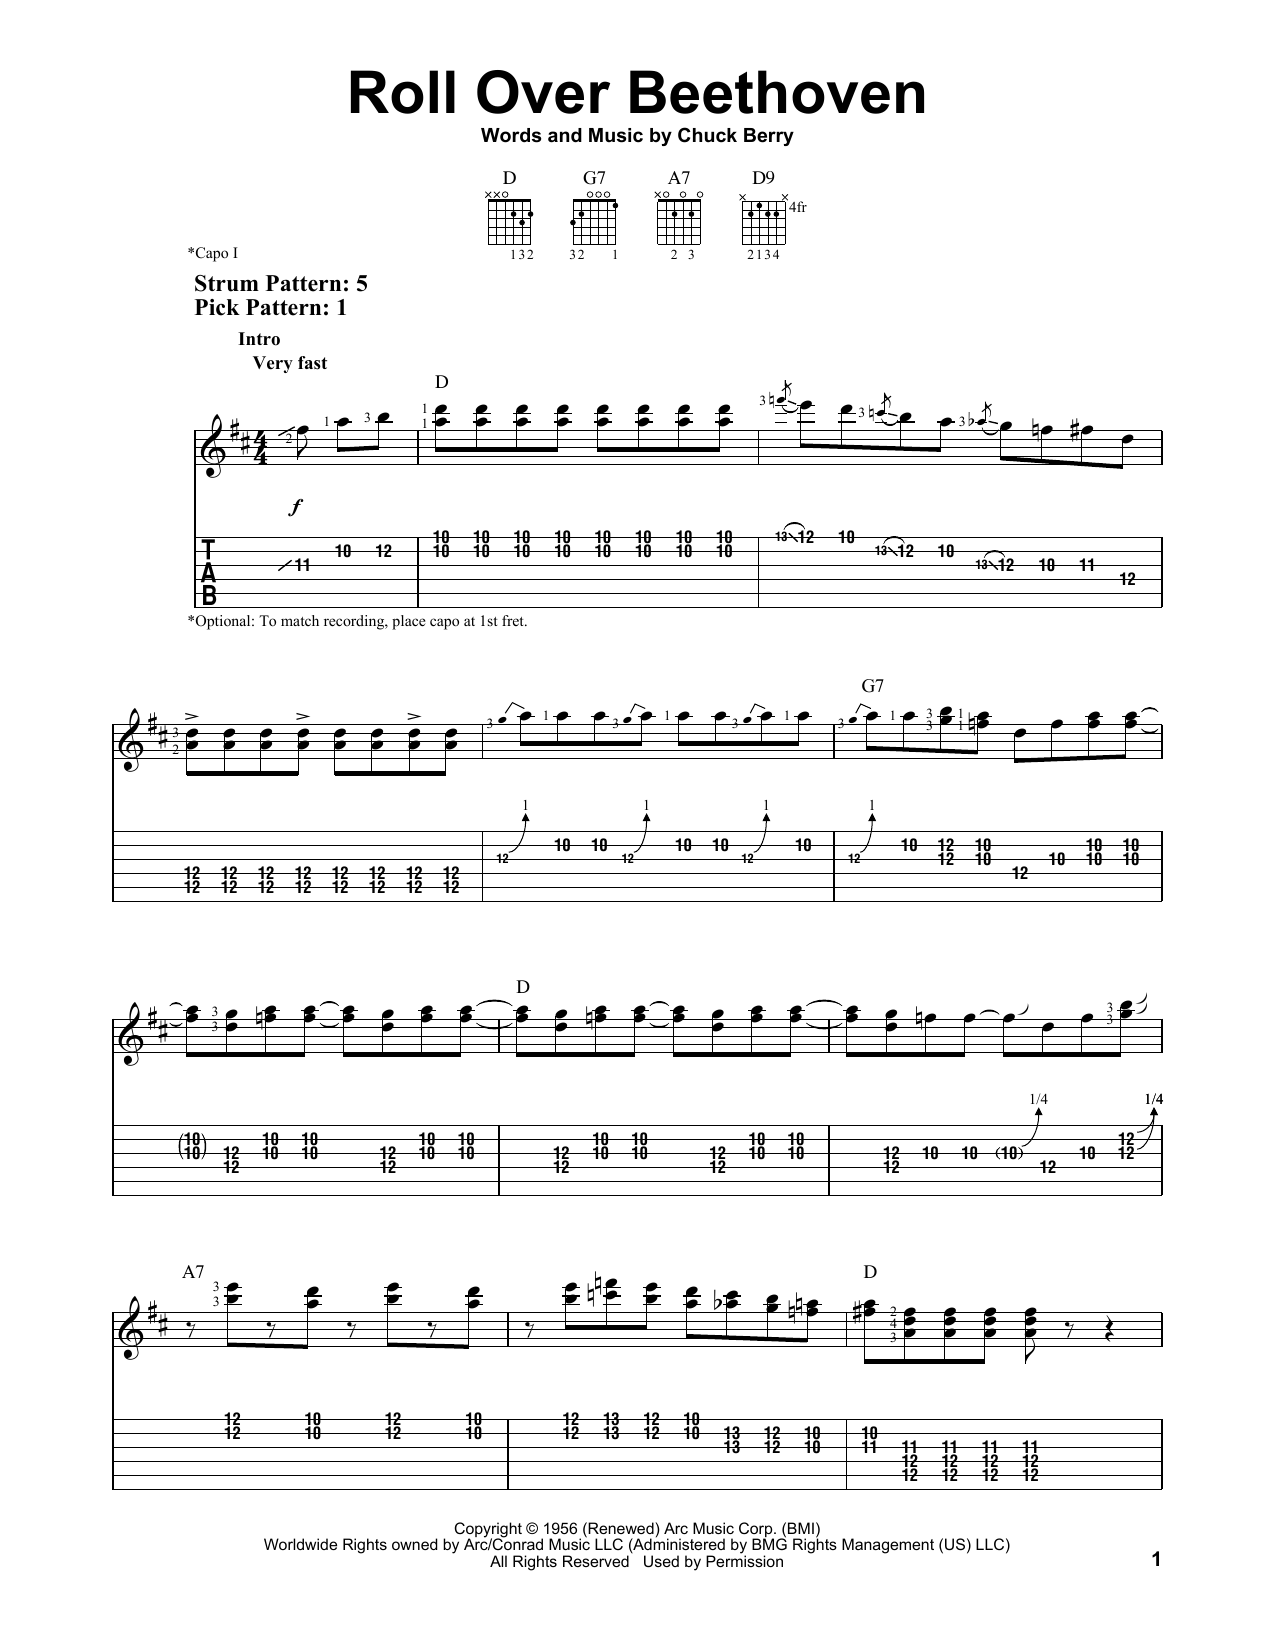 Roll Over Beethoven by Chuck Berry - Easy Guitar Tab - Guitar Instructor